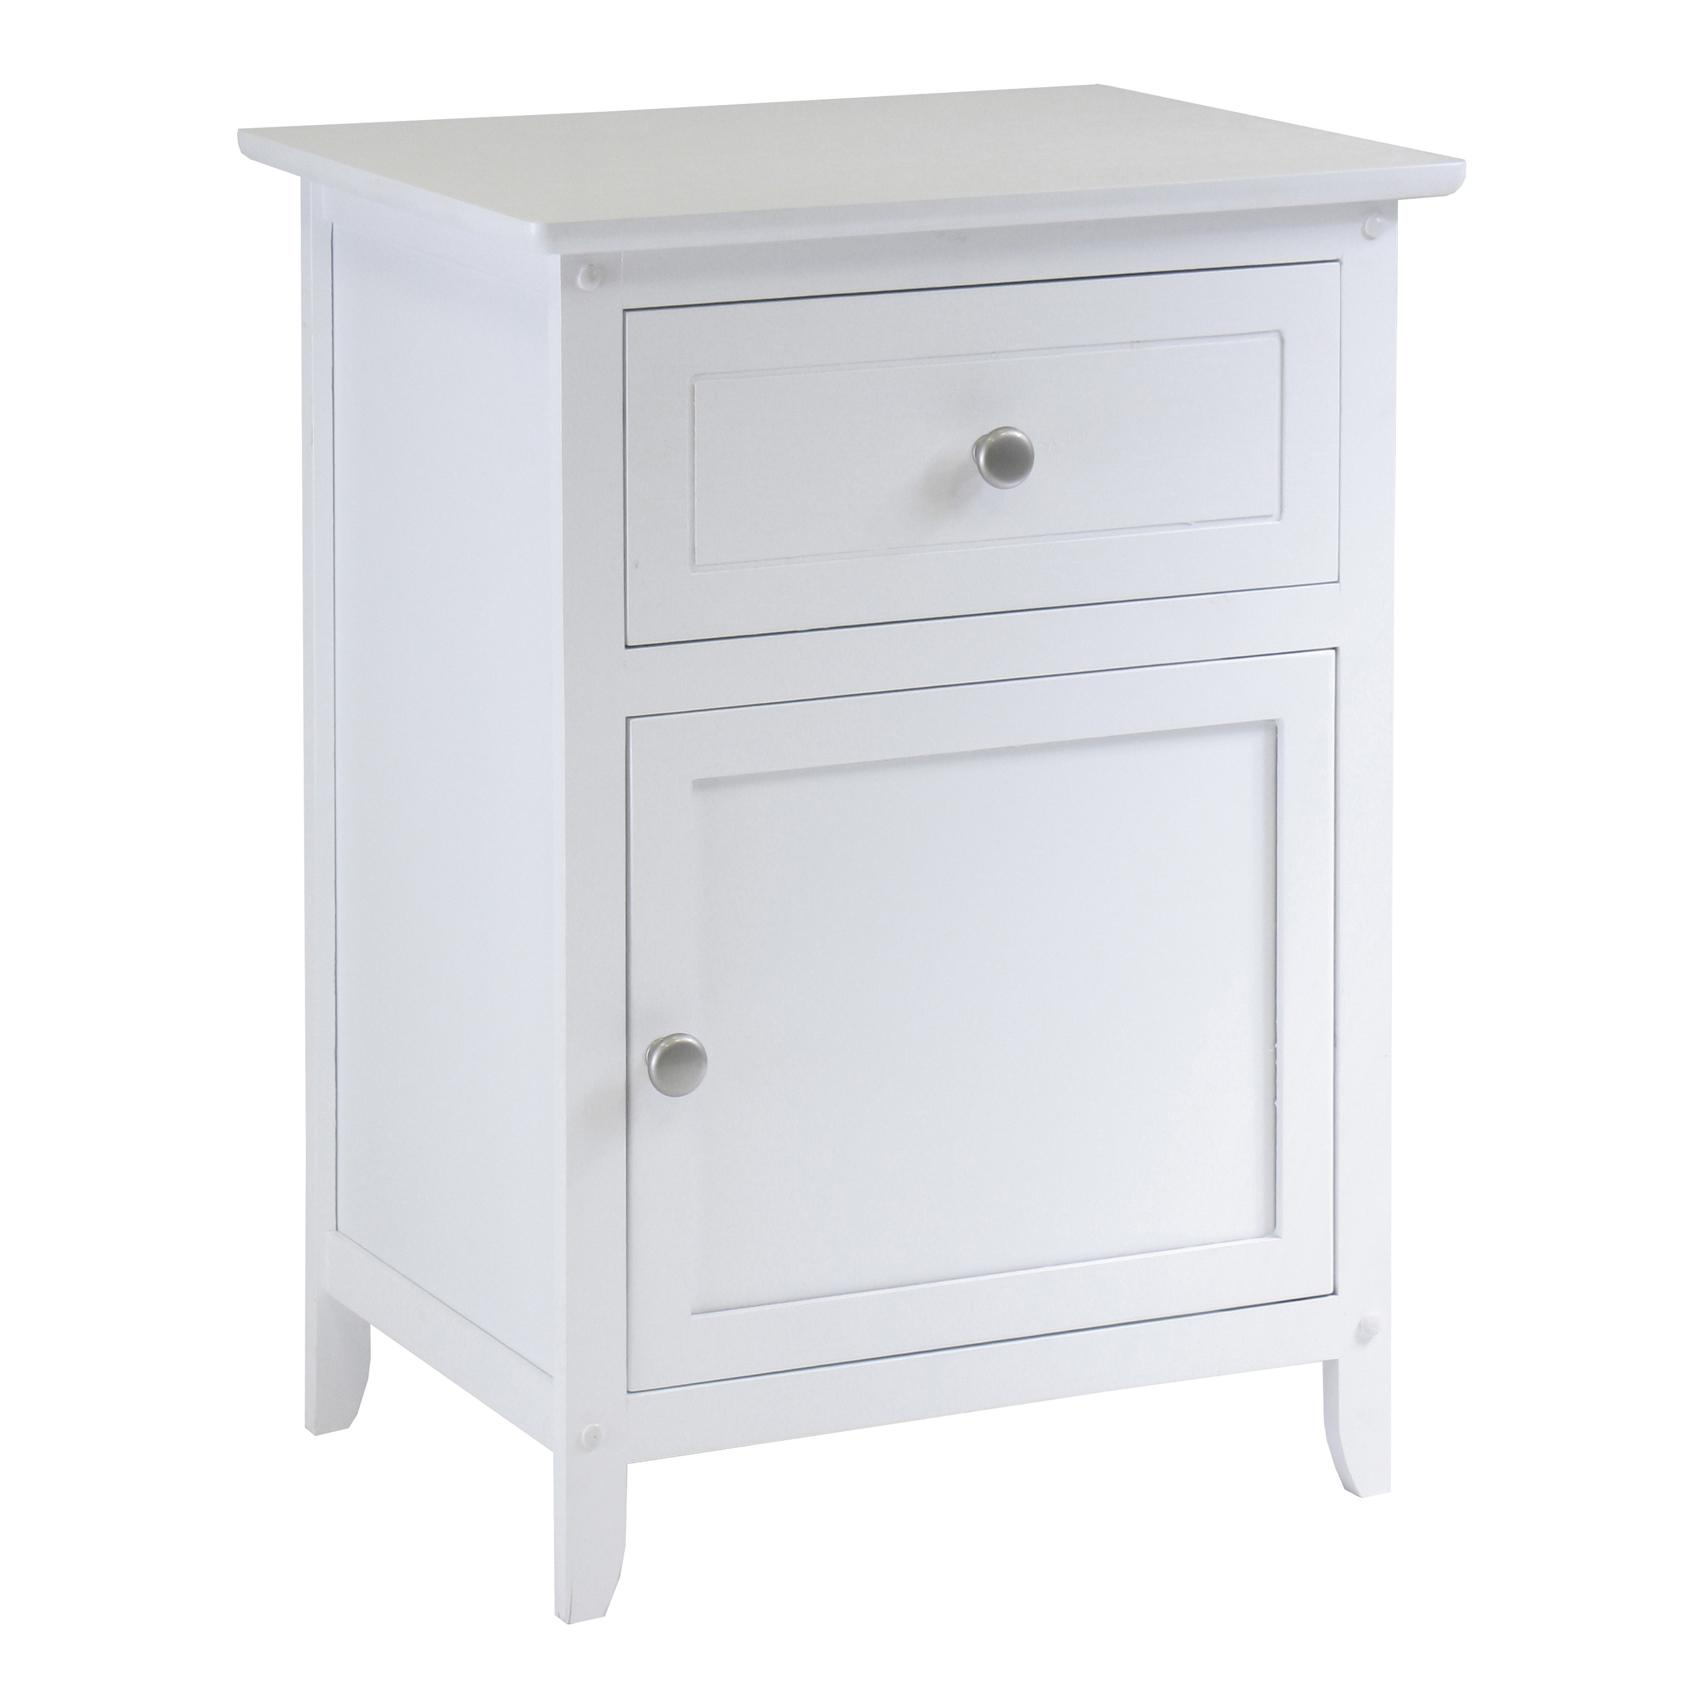 winsome wood night stand accent table with outdoor tables white basket drawers market umbrella large silver wall clock dining room top decor ikea mounted shelves lawn and patio